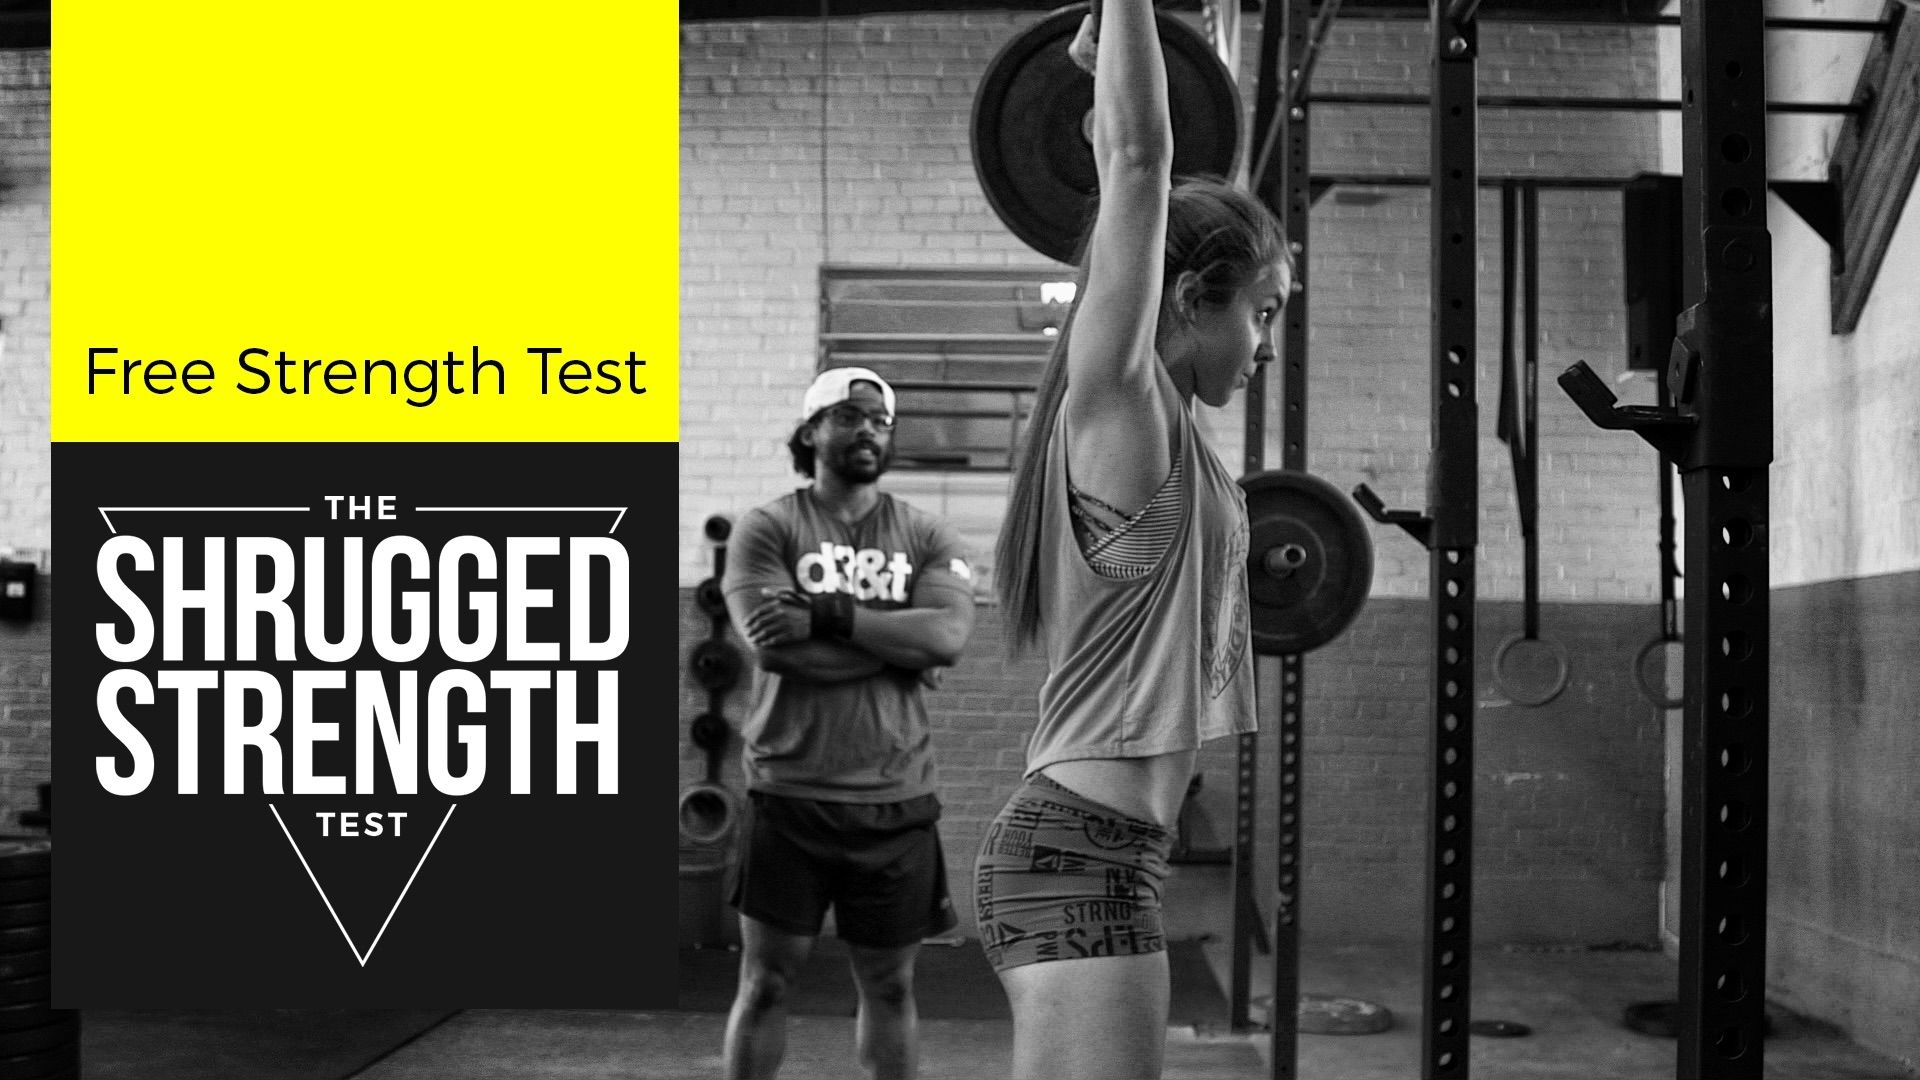 shrugged strength test barbell shrugged uncover weaknesses and imbalances in your strength and current training